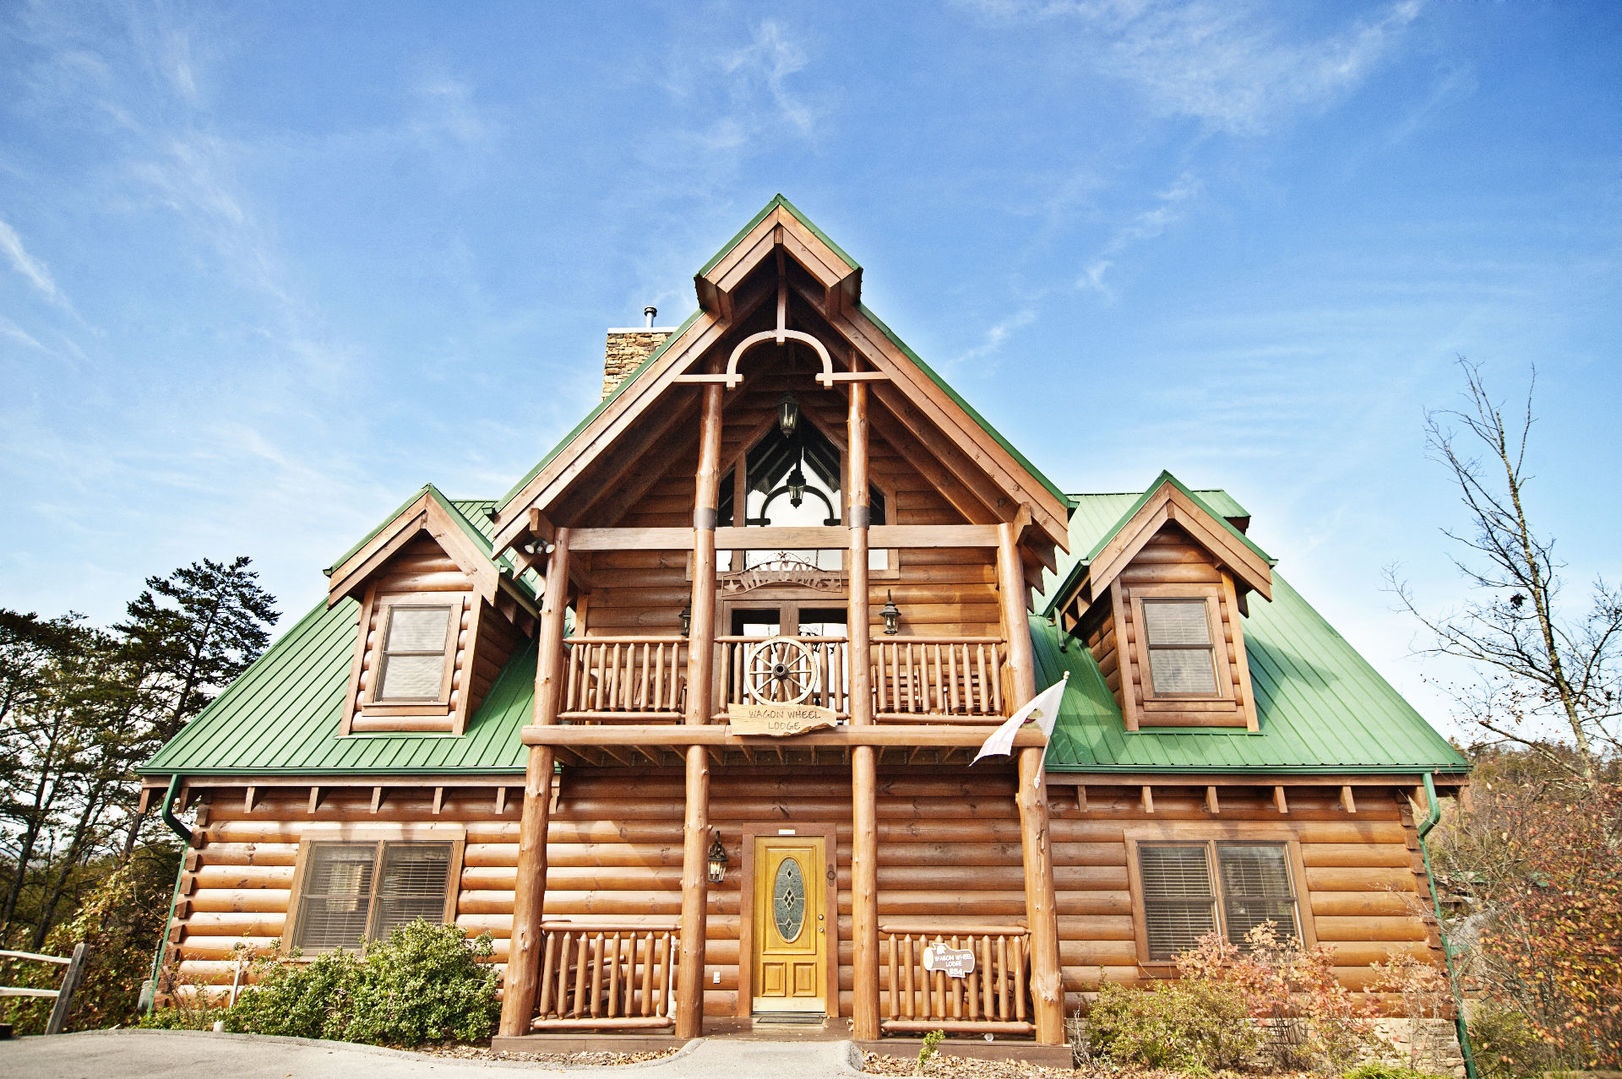 2 bedroom cabins in pigeon forge and gatlinburg heritage cabin rentals rh myheritagecabin com